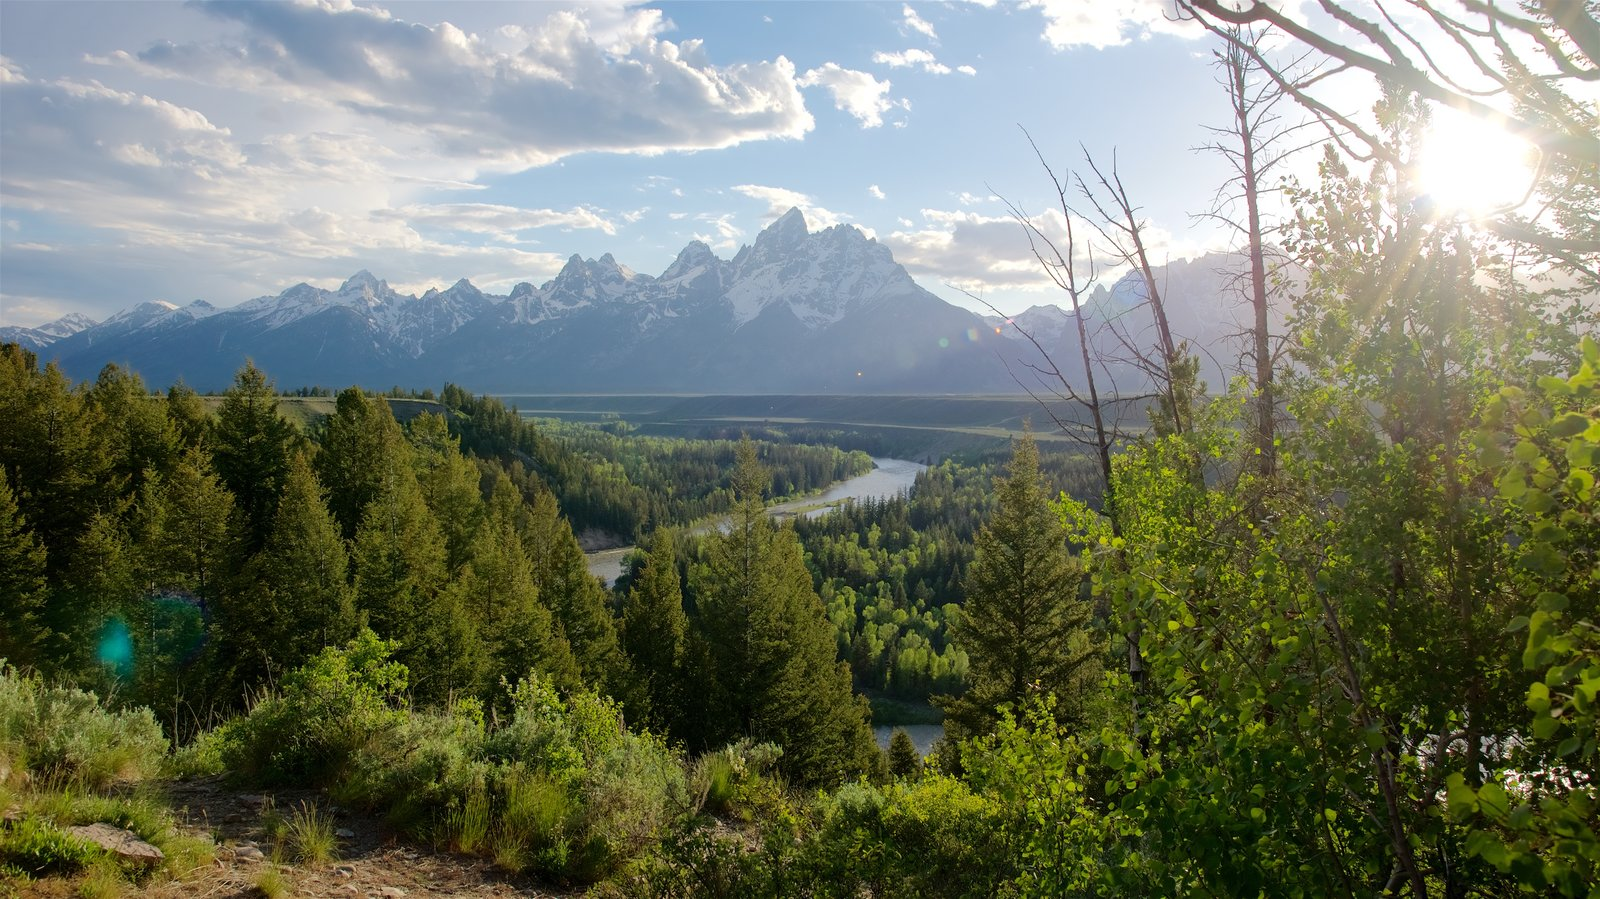 Grand Teton National Park featuring a river or creek, landscape views and tranquil scenes